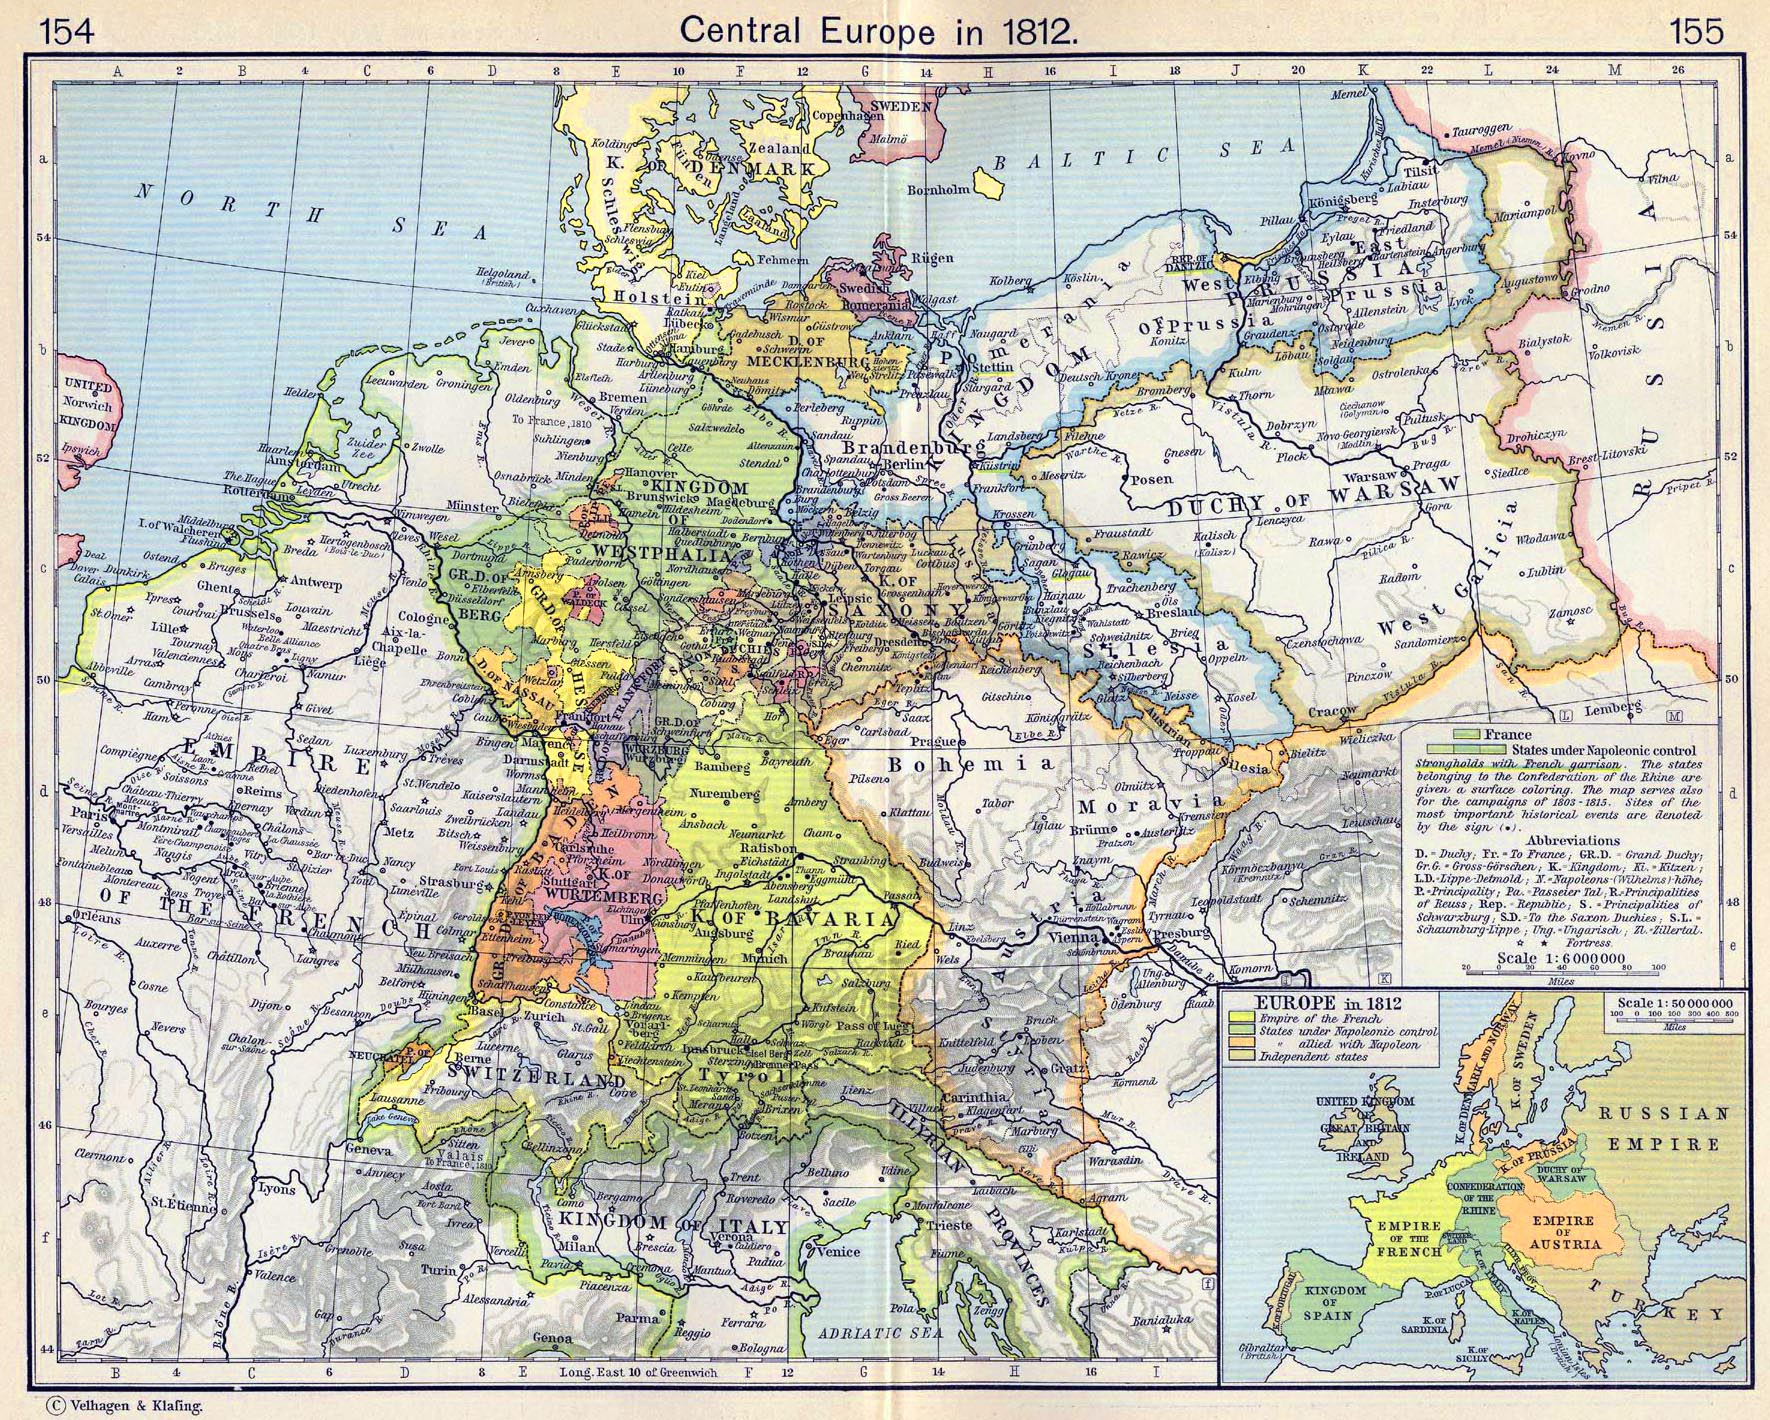 Map Of Napoleonic Europe 1812 Map of Europe in 1812 Map Of Napoleonic Europe 1812